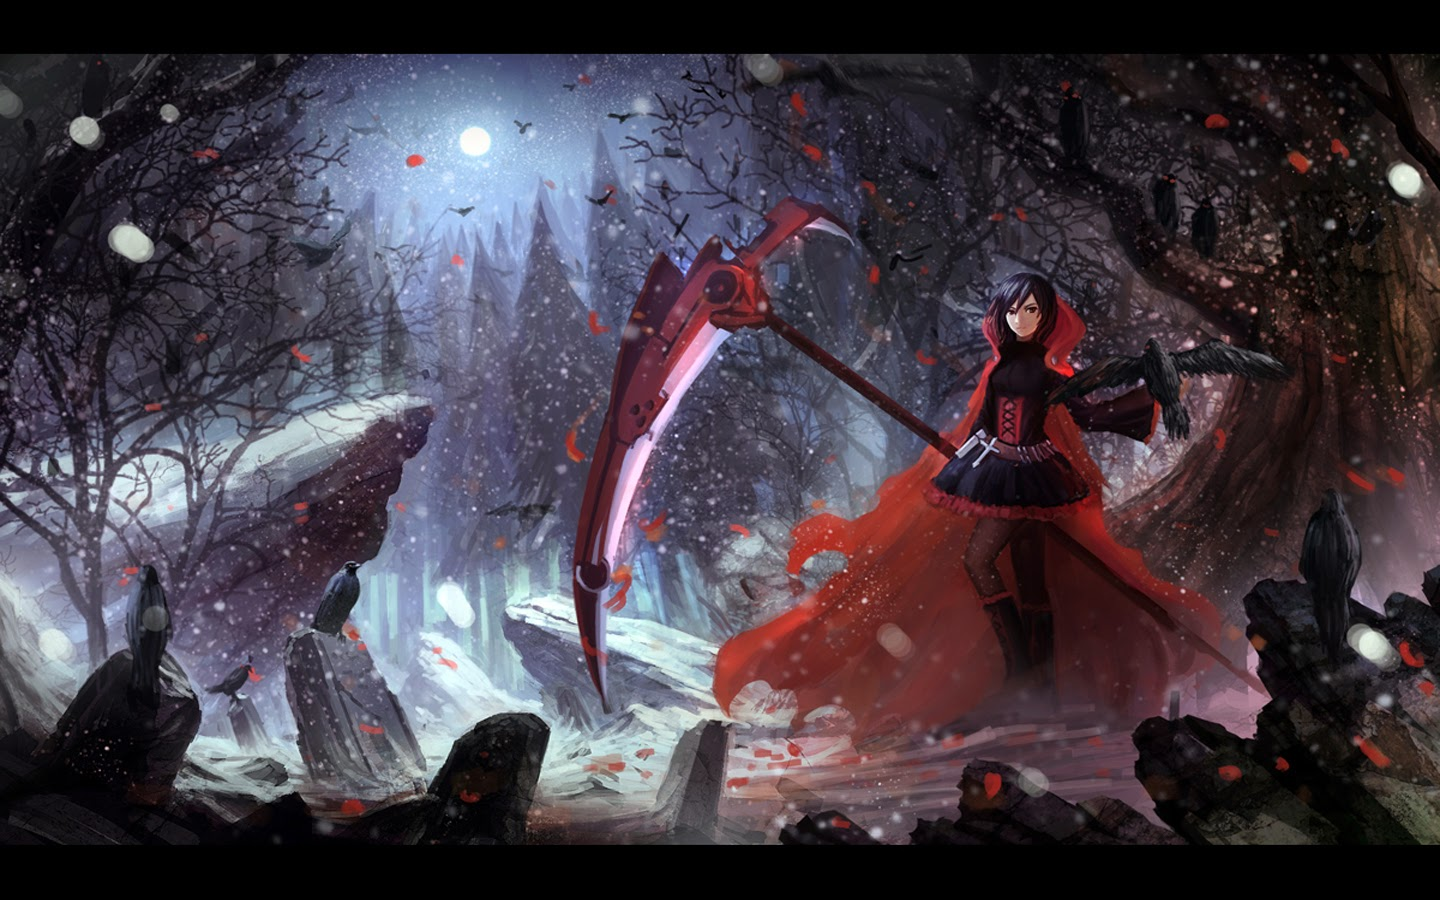 RWBY Ruby Rose a268 HD Wallpaper 1440x900